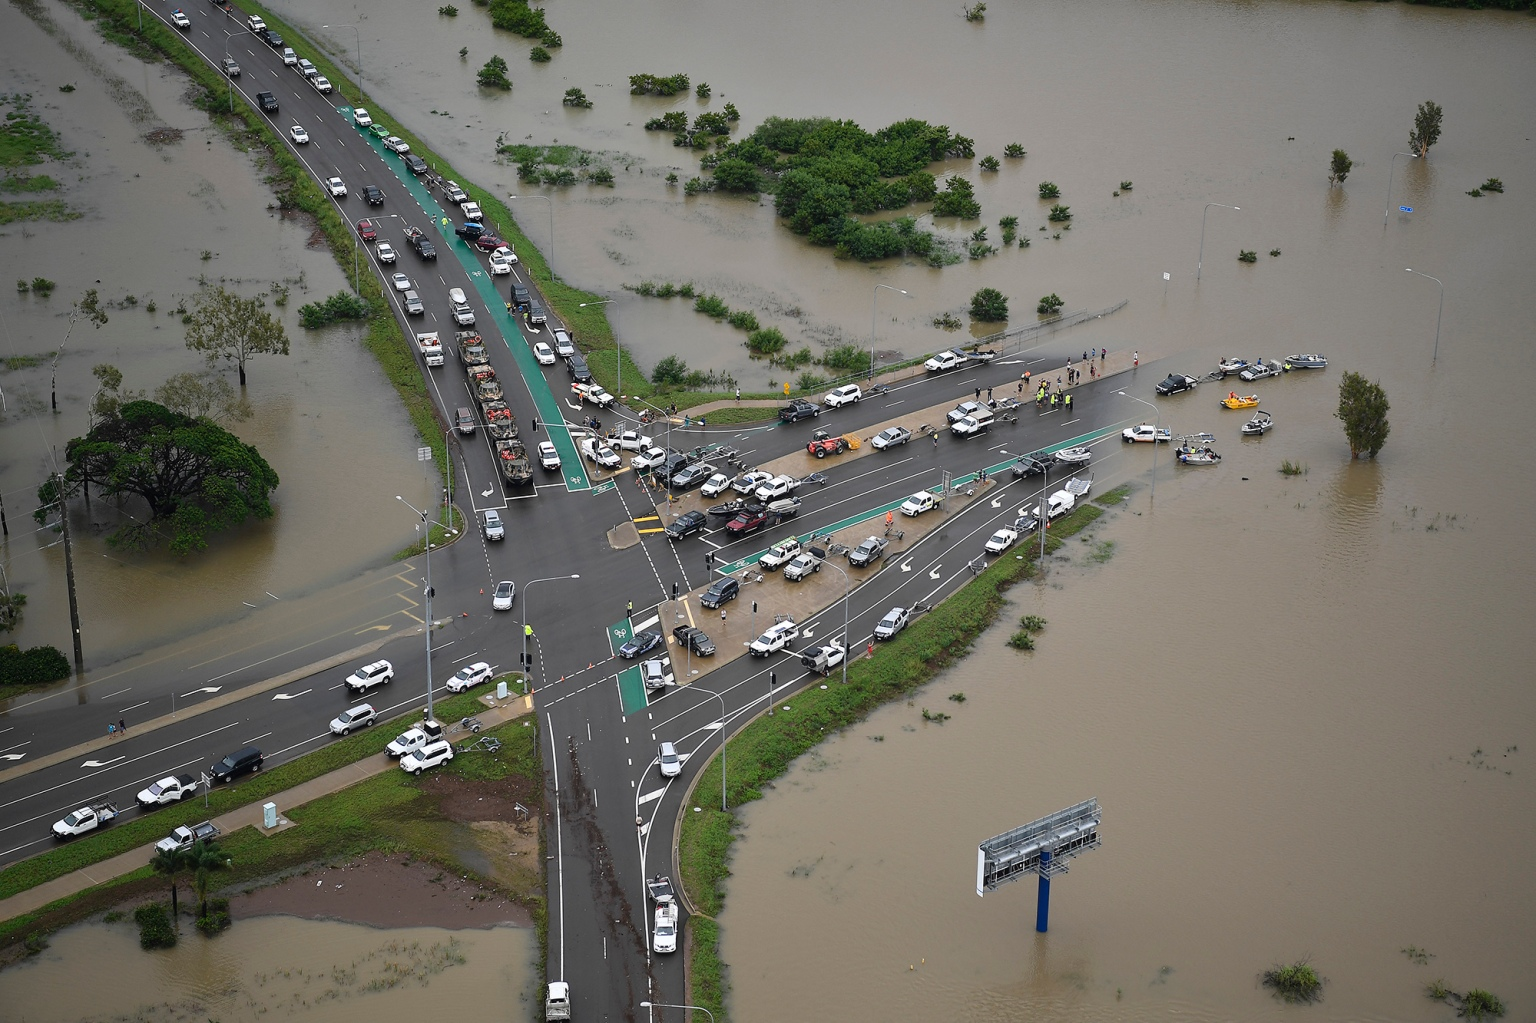 A major intersection is blocked by floodwaters in the Townsville suburb of Idalia, Australia, on Feb. 4. Record rainfall forced authorities to open the floodgates on the swollen Ross River dam. (Ian Hitchcock/Getty Images)